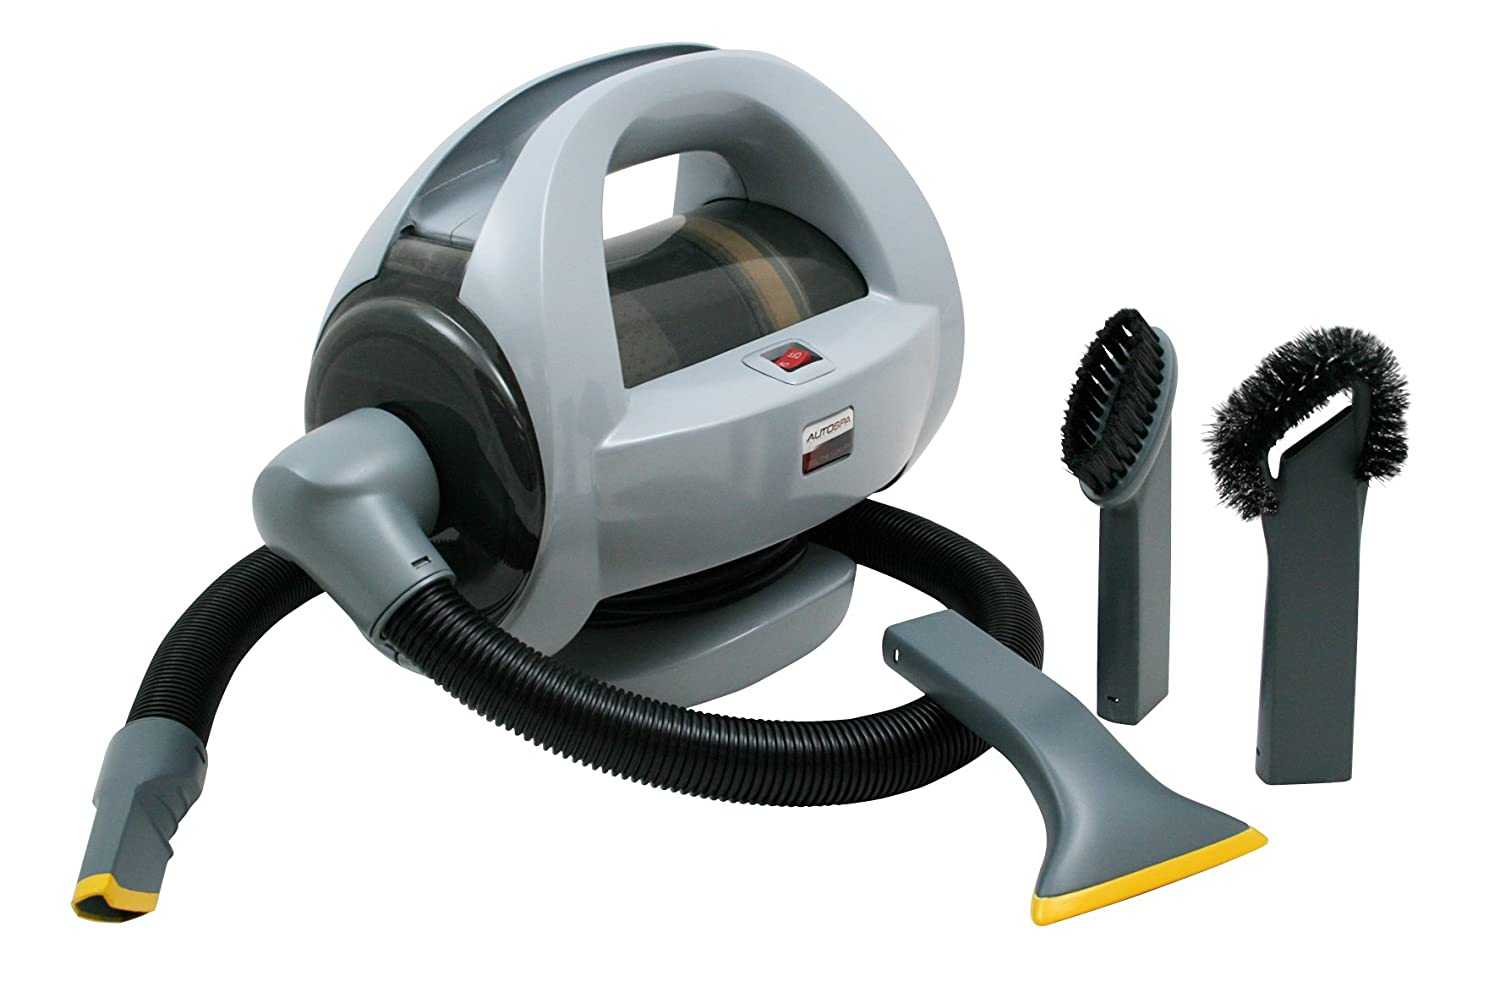 AutoSpa 94005AS Bag less Auto-Vac Hand-Held Vacuum